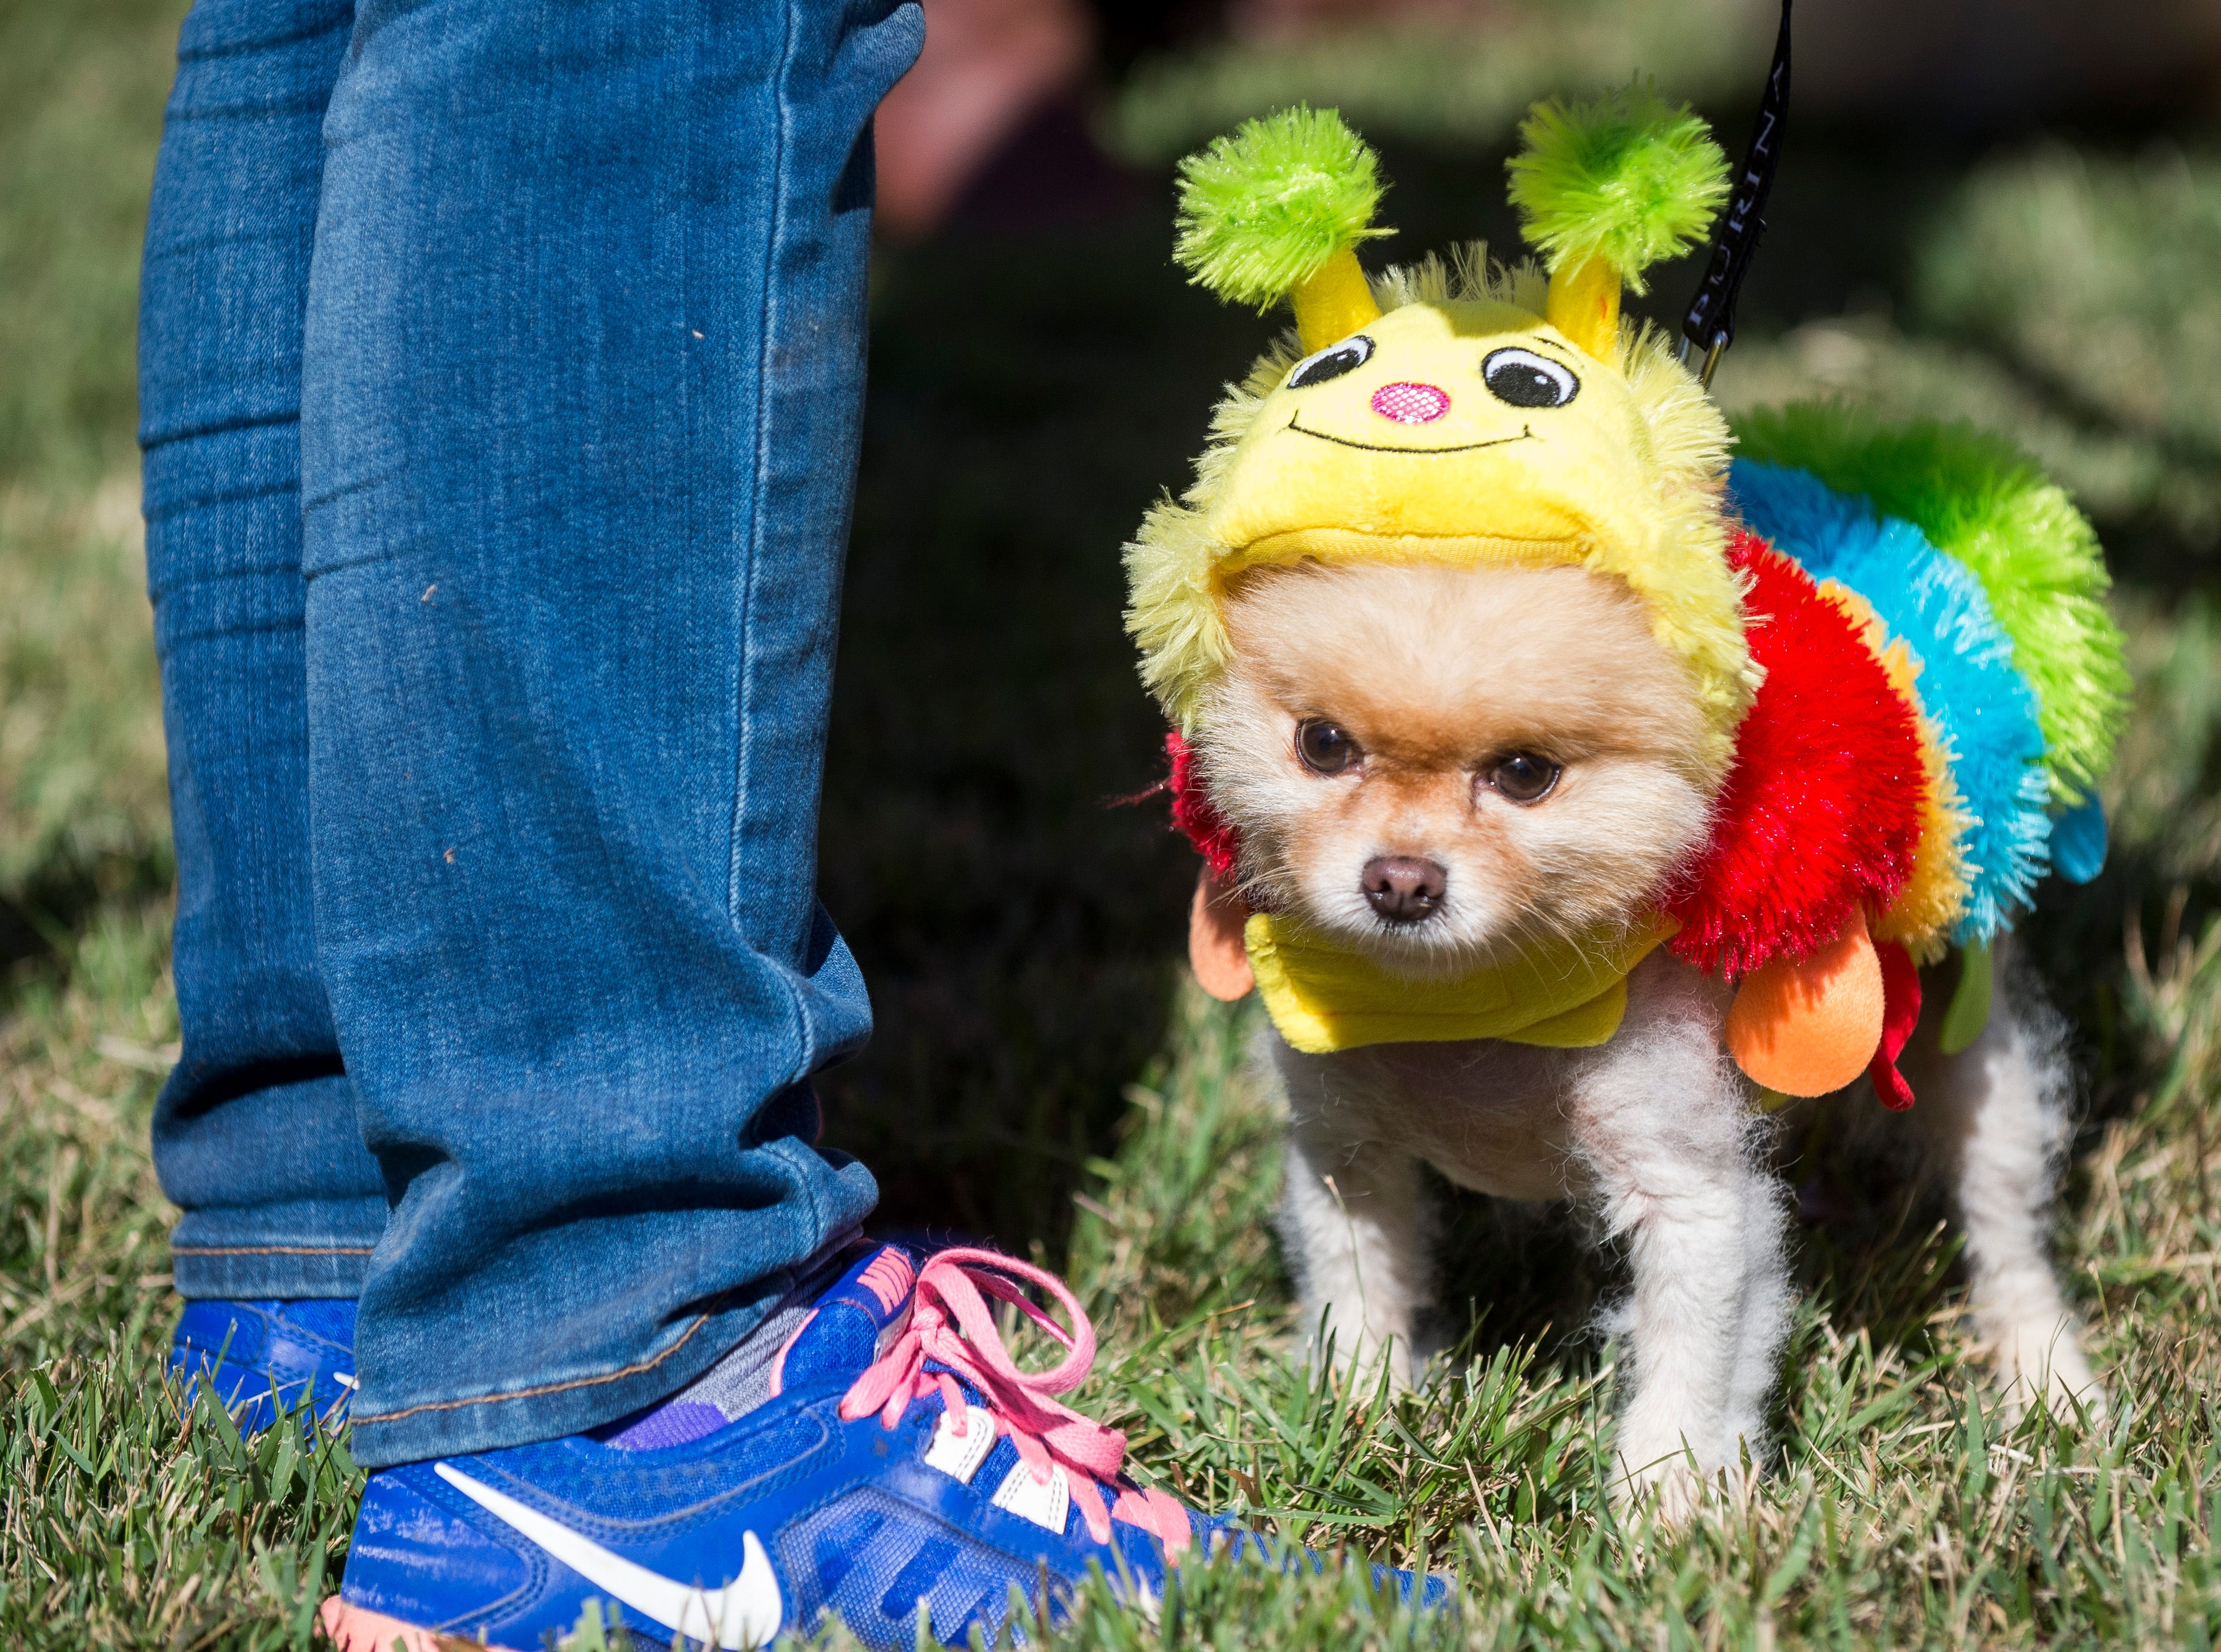 Dogs were dressed up in a variety of costumes at the Howl-O-Ween Pooch Parade held at UT Gardens in Knoxville on Sunday, Oct. 23, 2016.